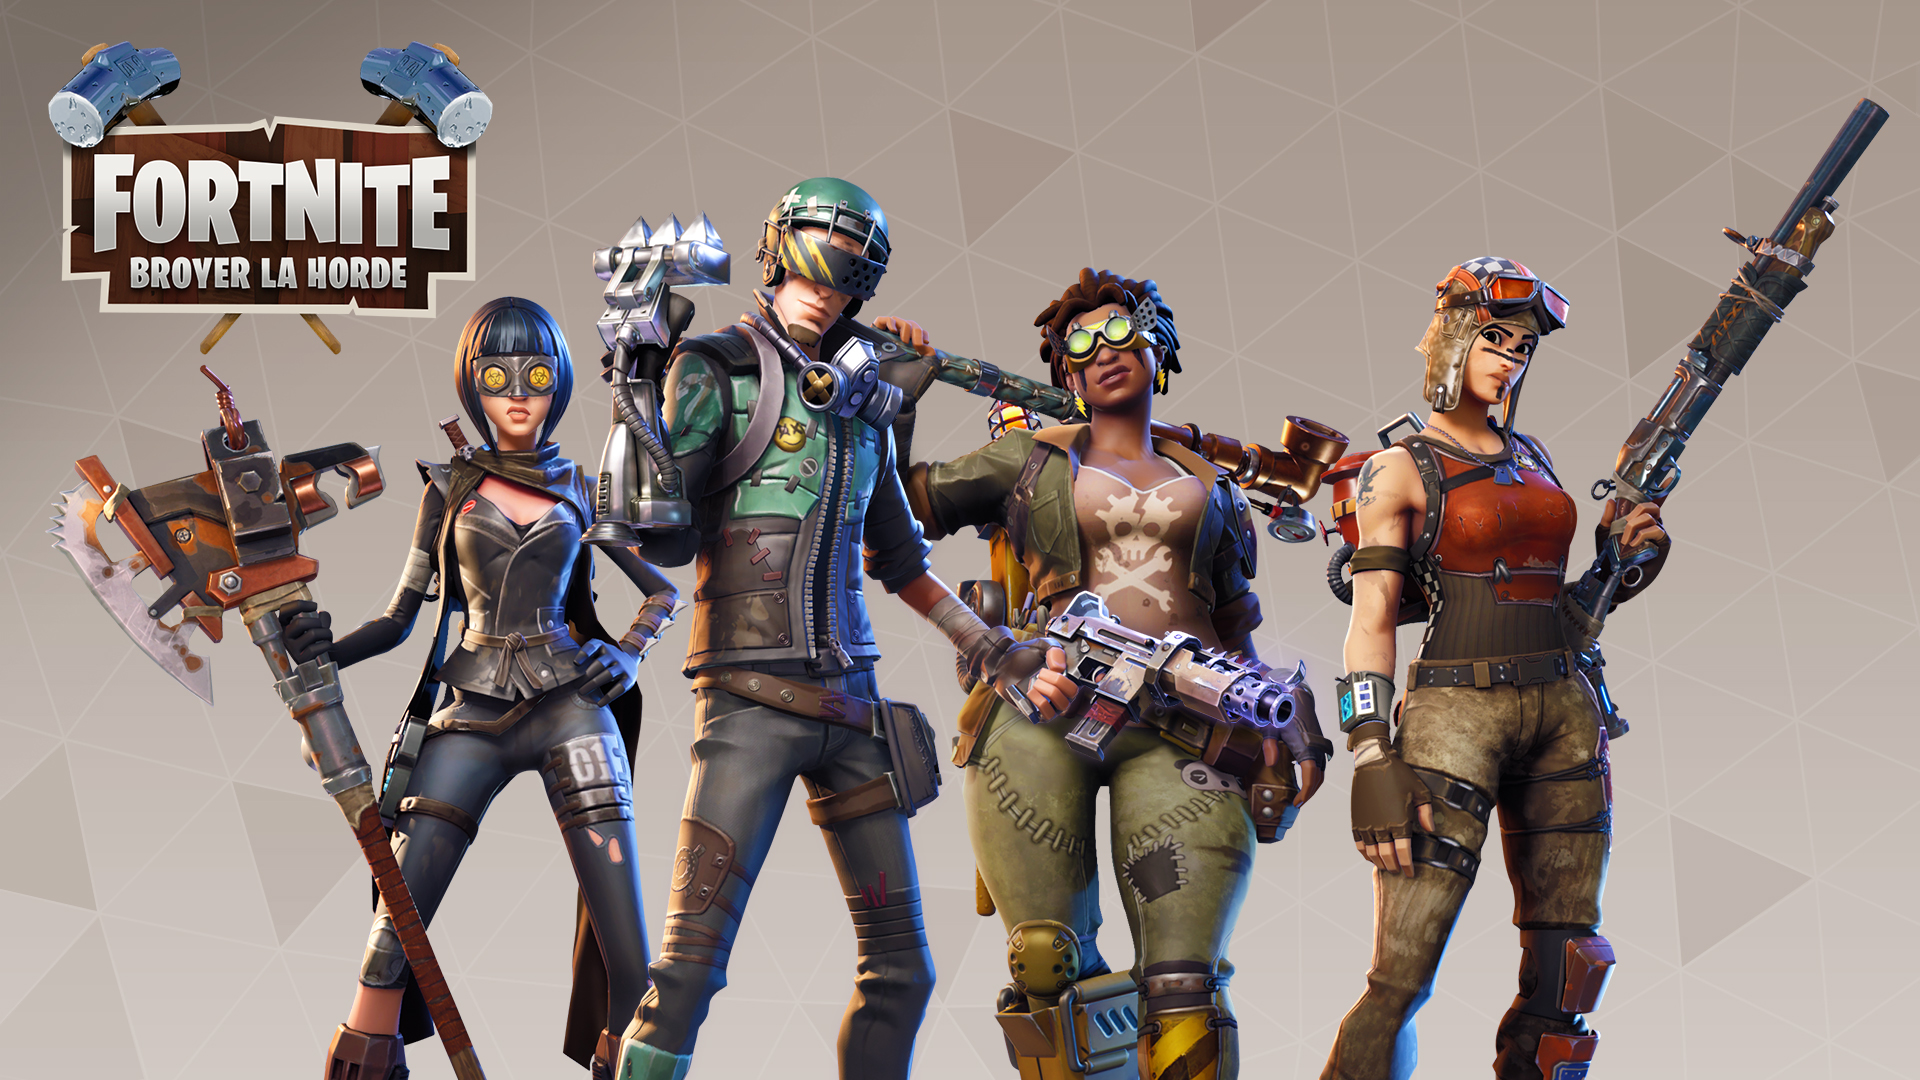 Fortnite%2Fblog%2Fea-1-7-patch-notes%2FFR-HB-Heroes-1920x1080-bd9b31f3d05a199627c57cd63040f357c221ee51